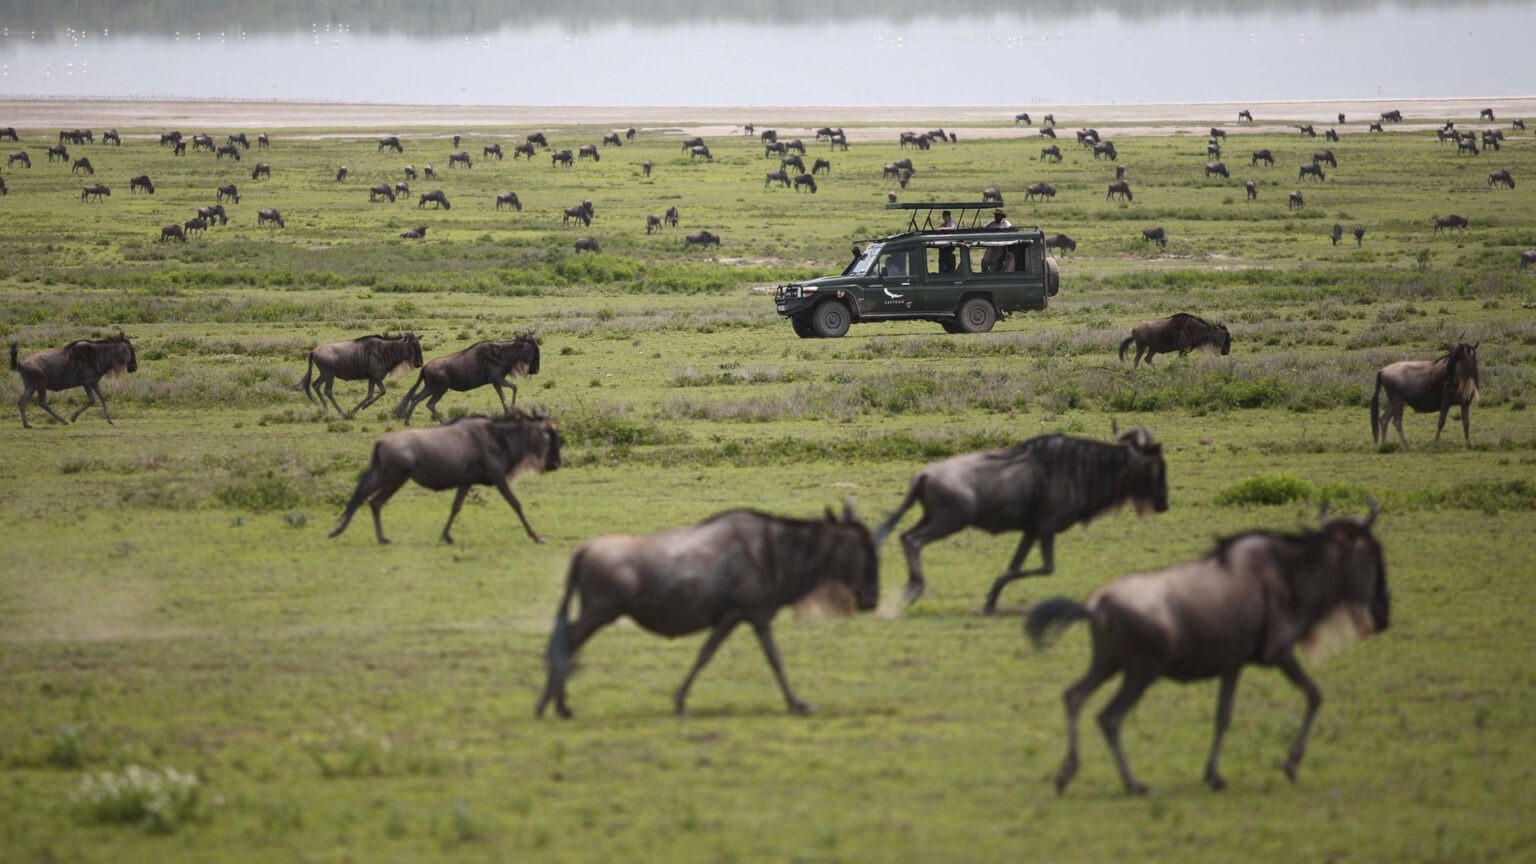 Wildebeests make their dramatic crossing of the northern Serengeti plains